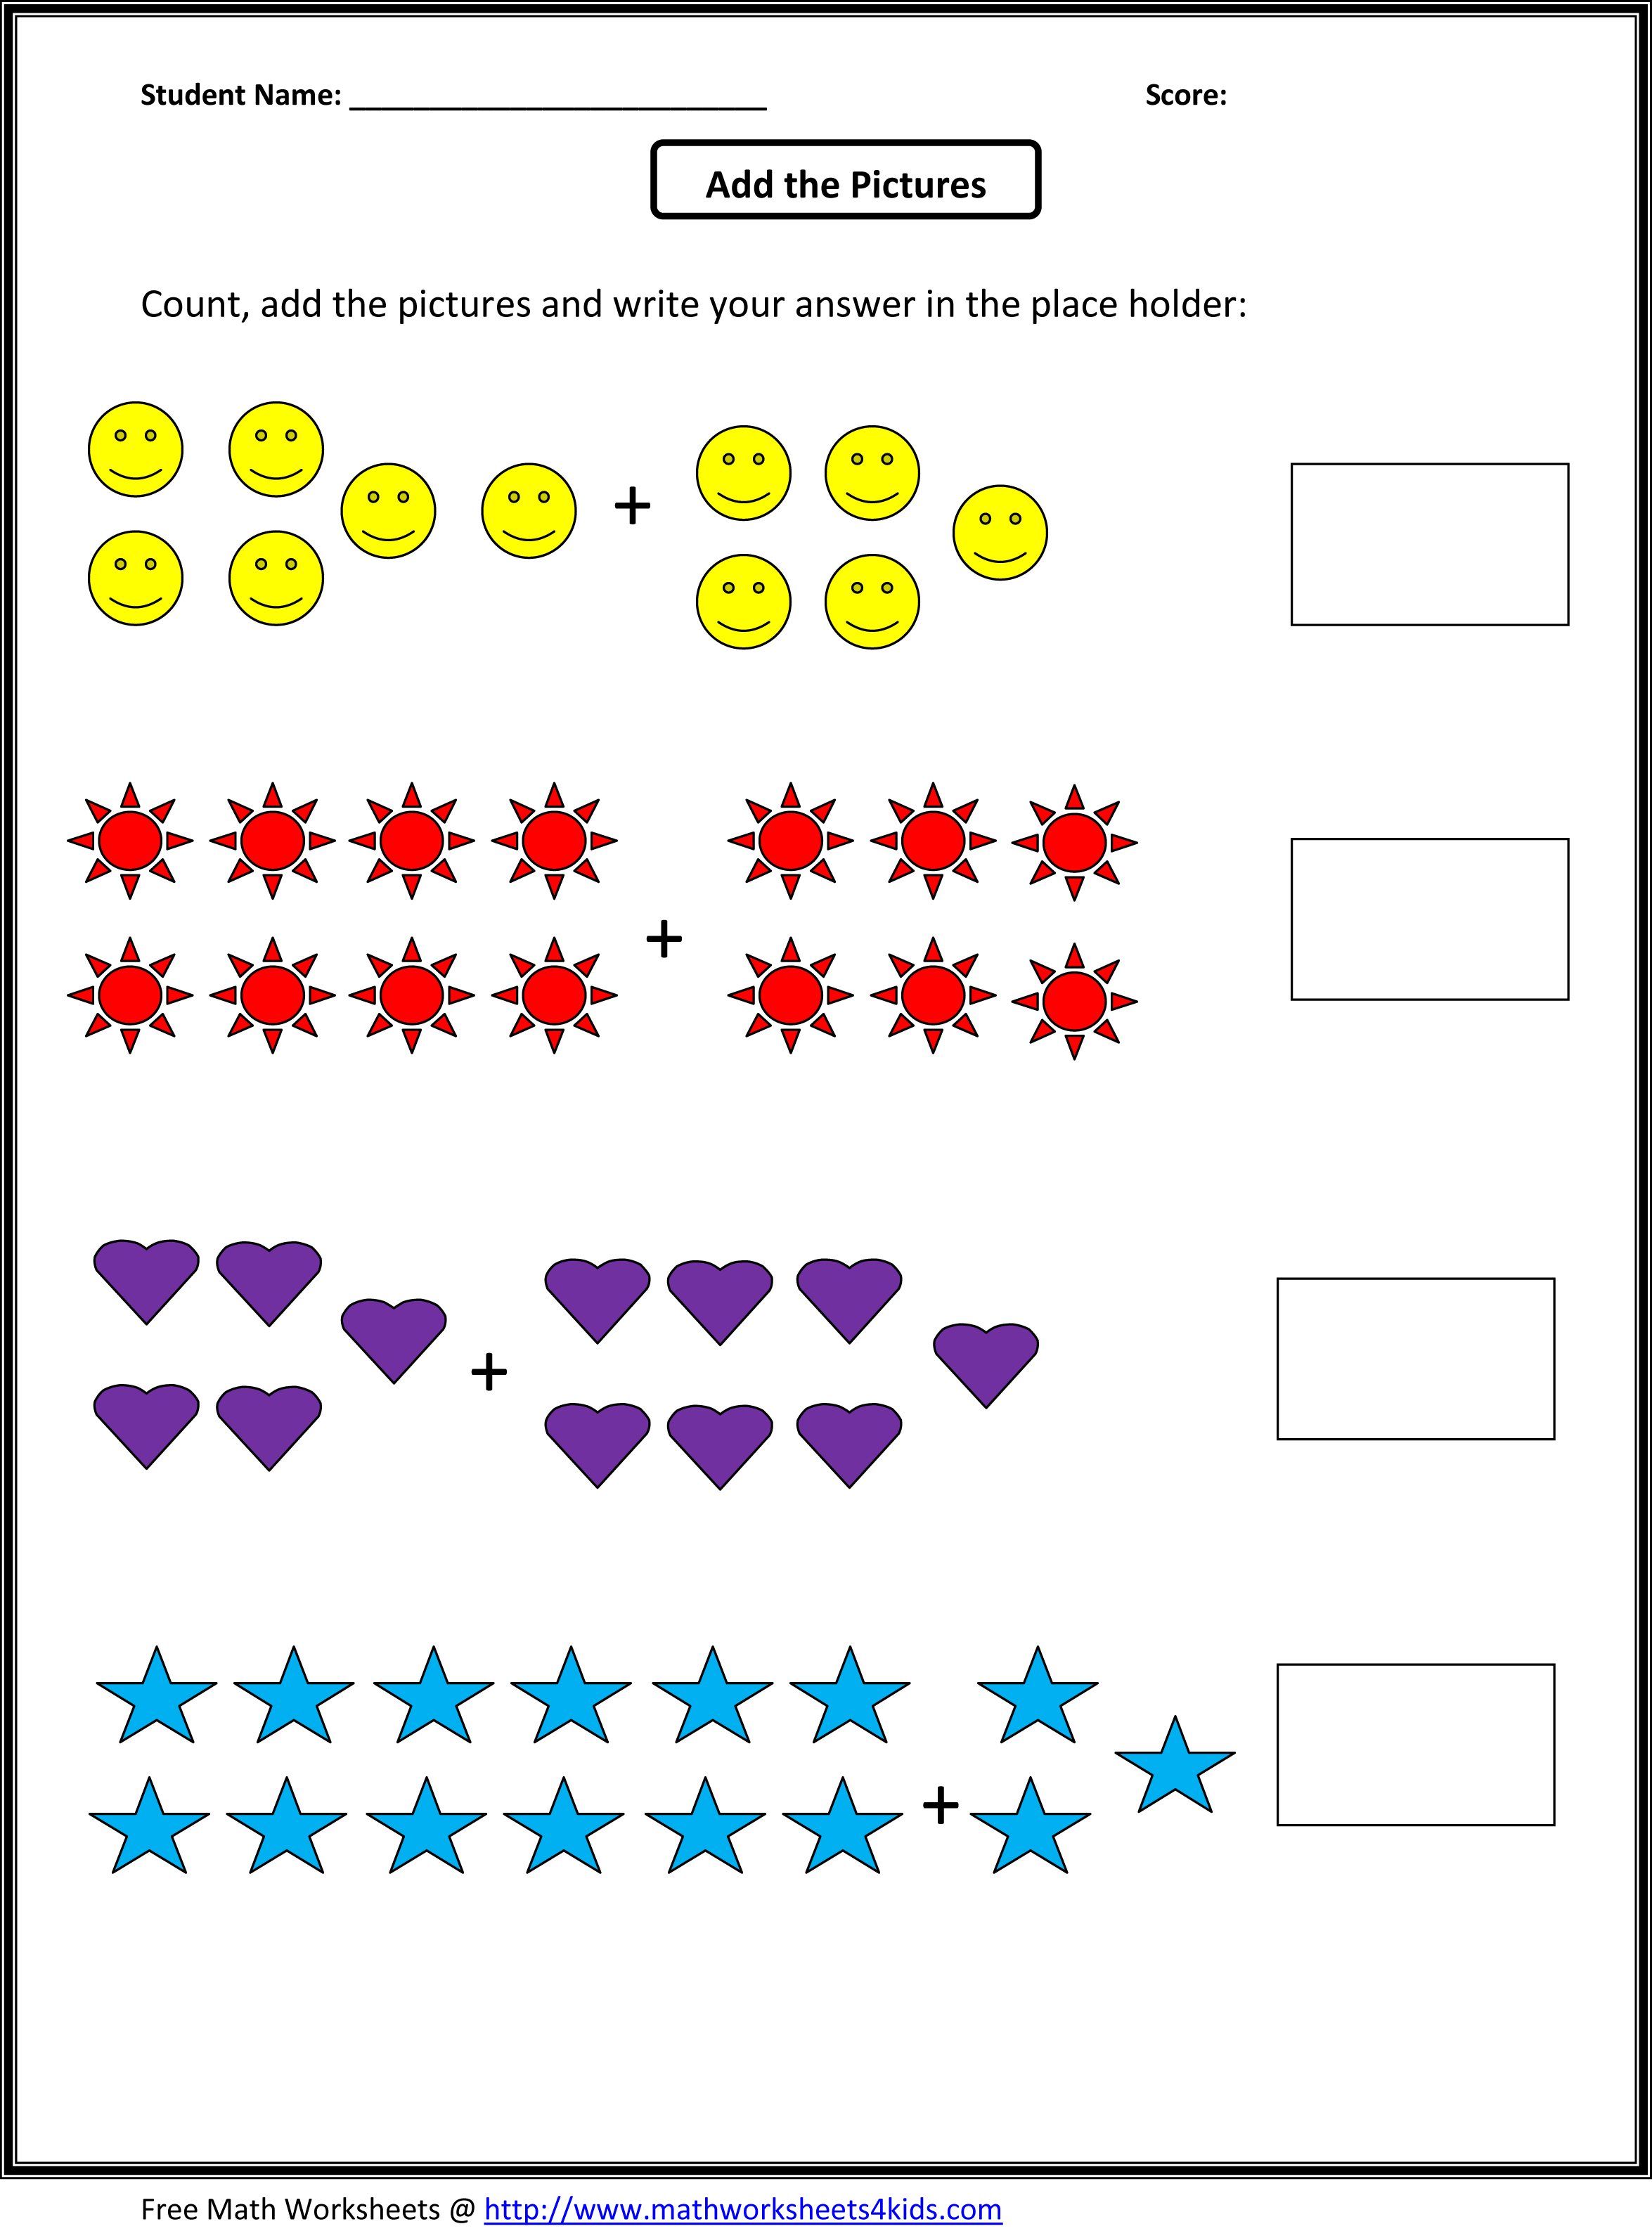 Weirdmailus  Scenic Grade  Maths Worksheet  Reocurent With Glamorous Math Worksheets For St Grade Free  Reocurent With Cute Boyles Law And Charles Law Worksheet Also States Worksheets In Addition Powers And Exponents Worksheet And Conceptual Physics Worksheets As Well As Fishing Merit Badge Worksheet Additionally Continent Worksheets From Reocurentcom With Weirdmailus  Glamorous Grade  Maths Worksheet  Reocurent With Cute Math Worksheets For St Grade Free  Reocurent And Scenic Boyles Law And Charles Law Worksheet Also States Worksheets In Addition Powers And Exponents Worksheet From Reocurentcom